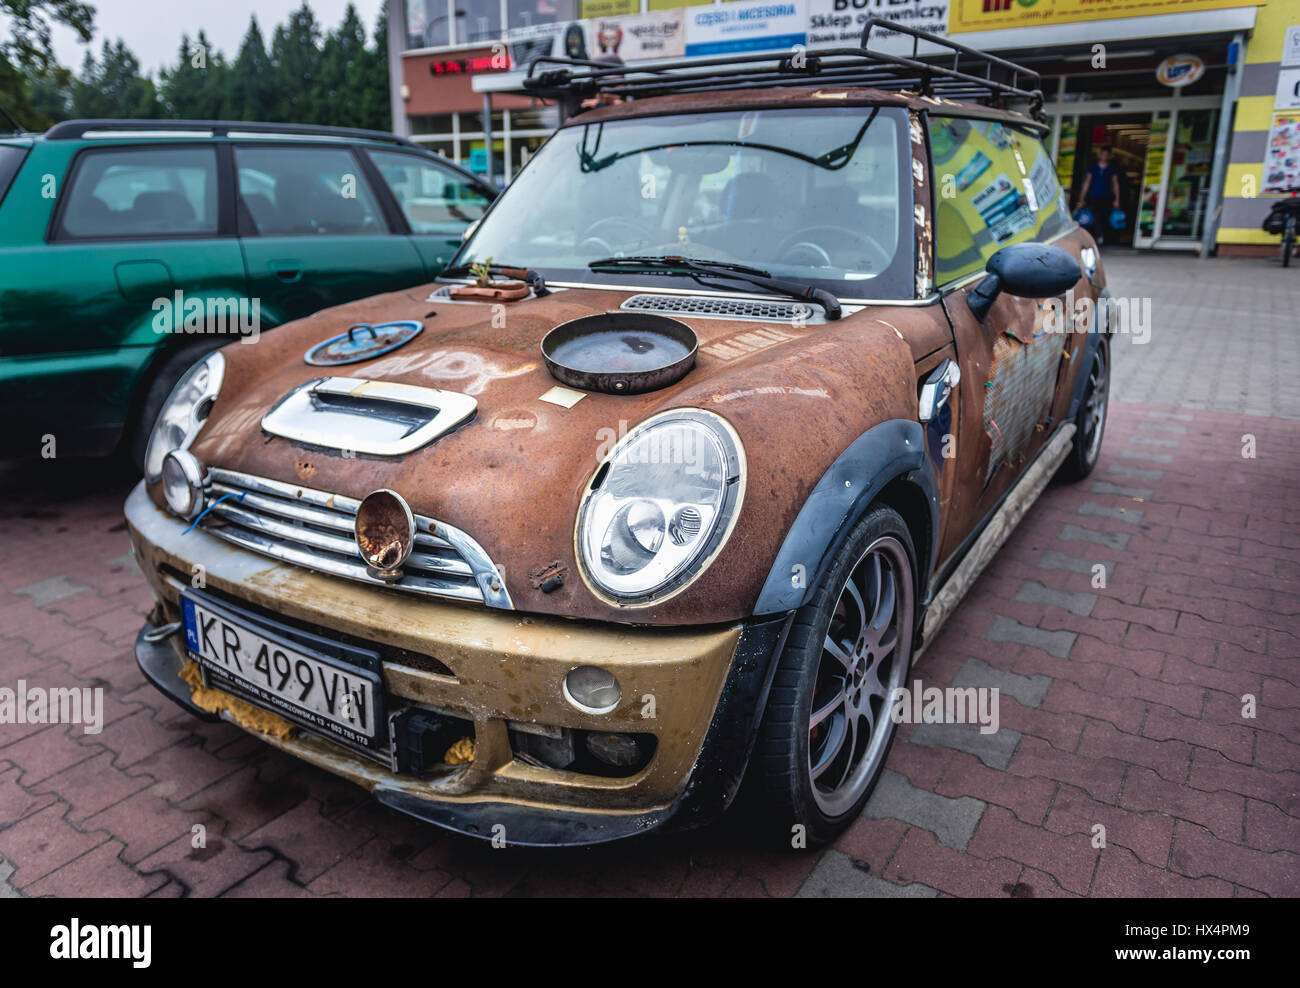 uncanny mini one car tuning in kartuzy town in kashubia. Black Bedroom Furniture Sets. Home Design Ideas